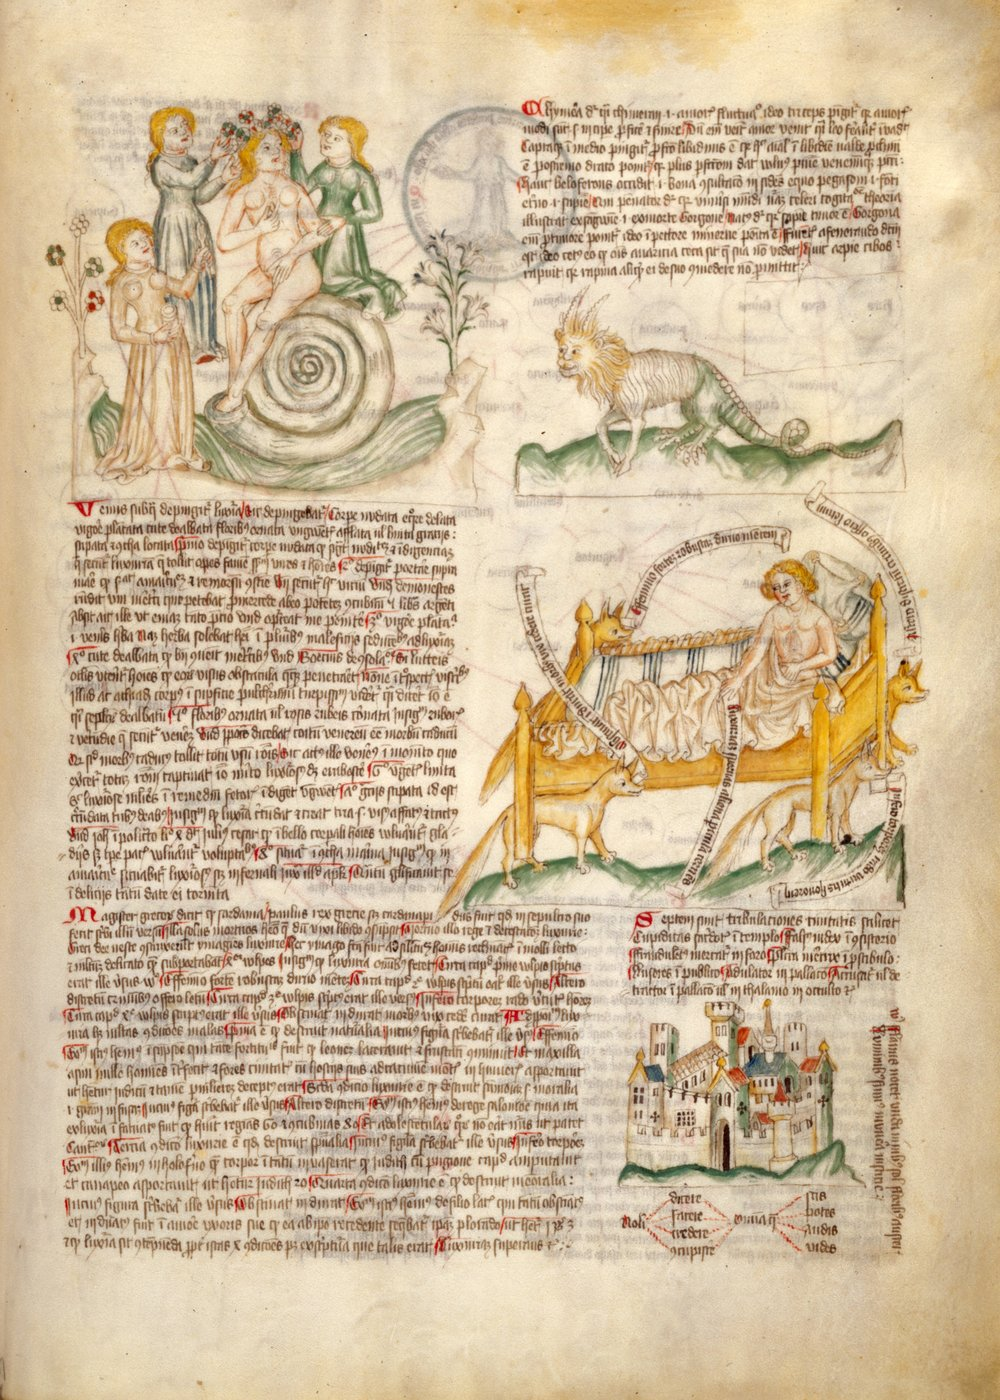 This page shows the personification of lechery